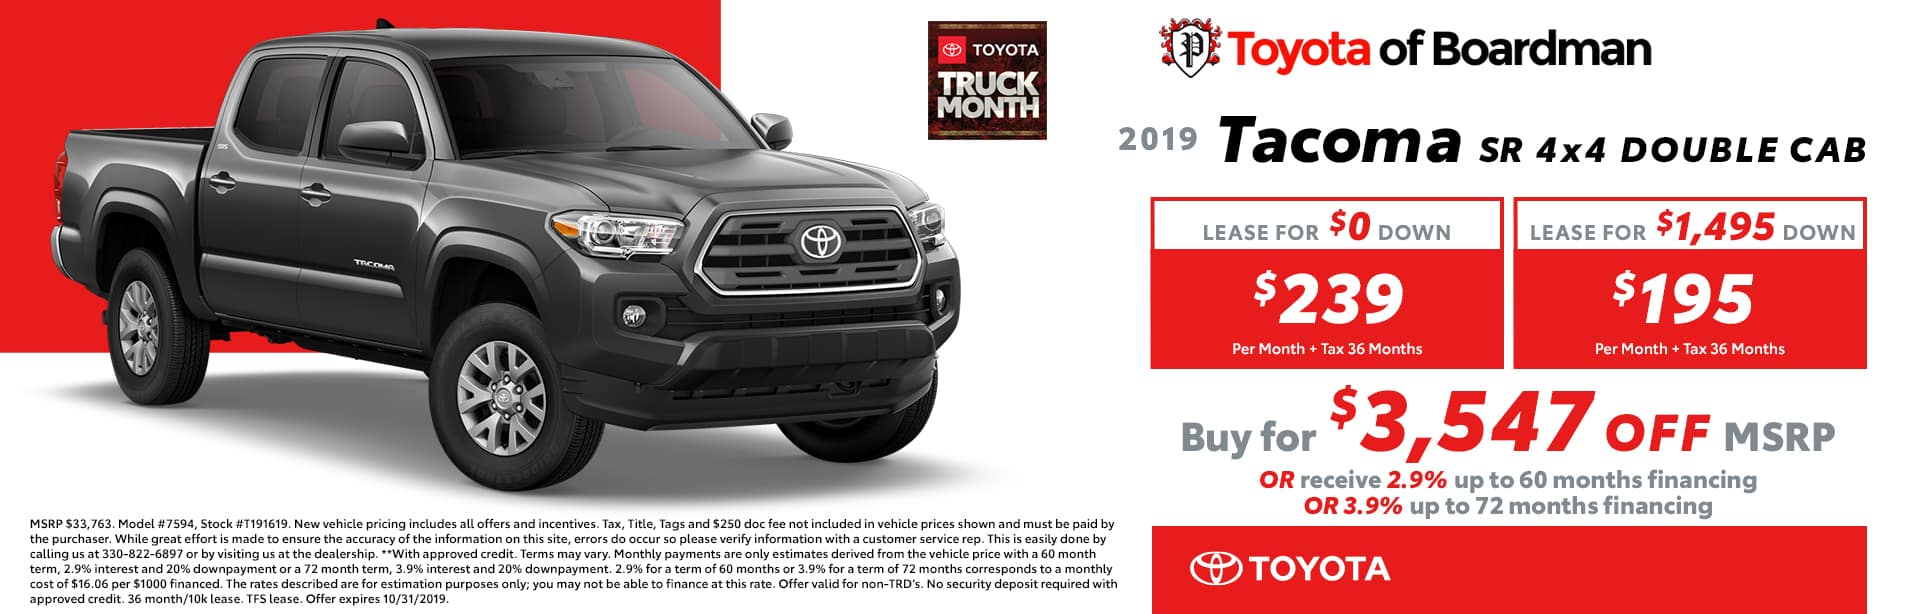 October special on the 2019 Toyota Tacoma